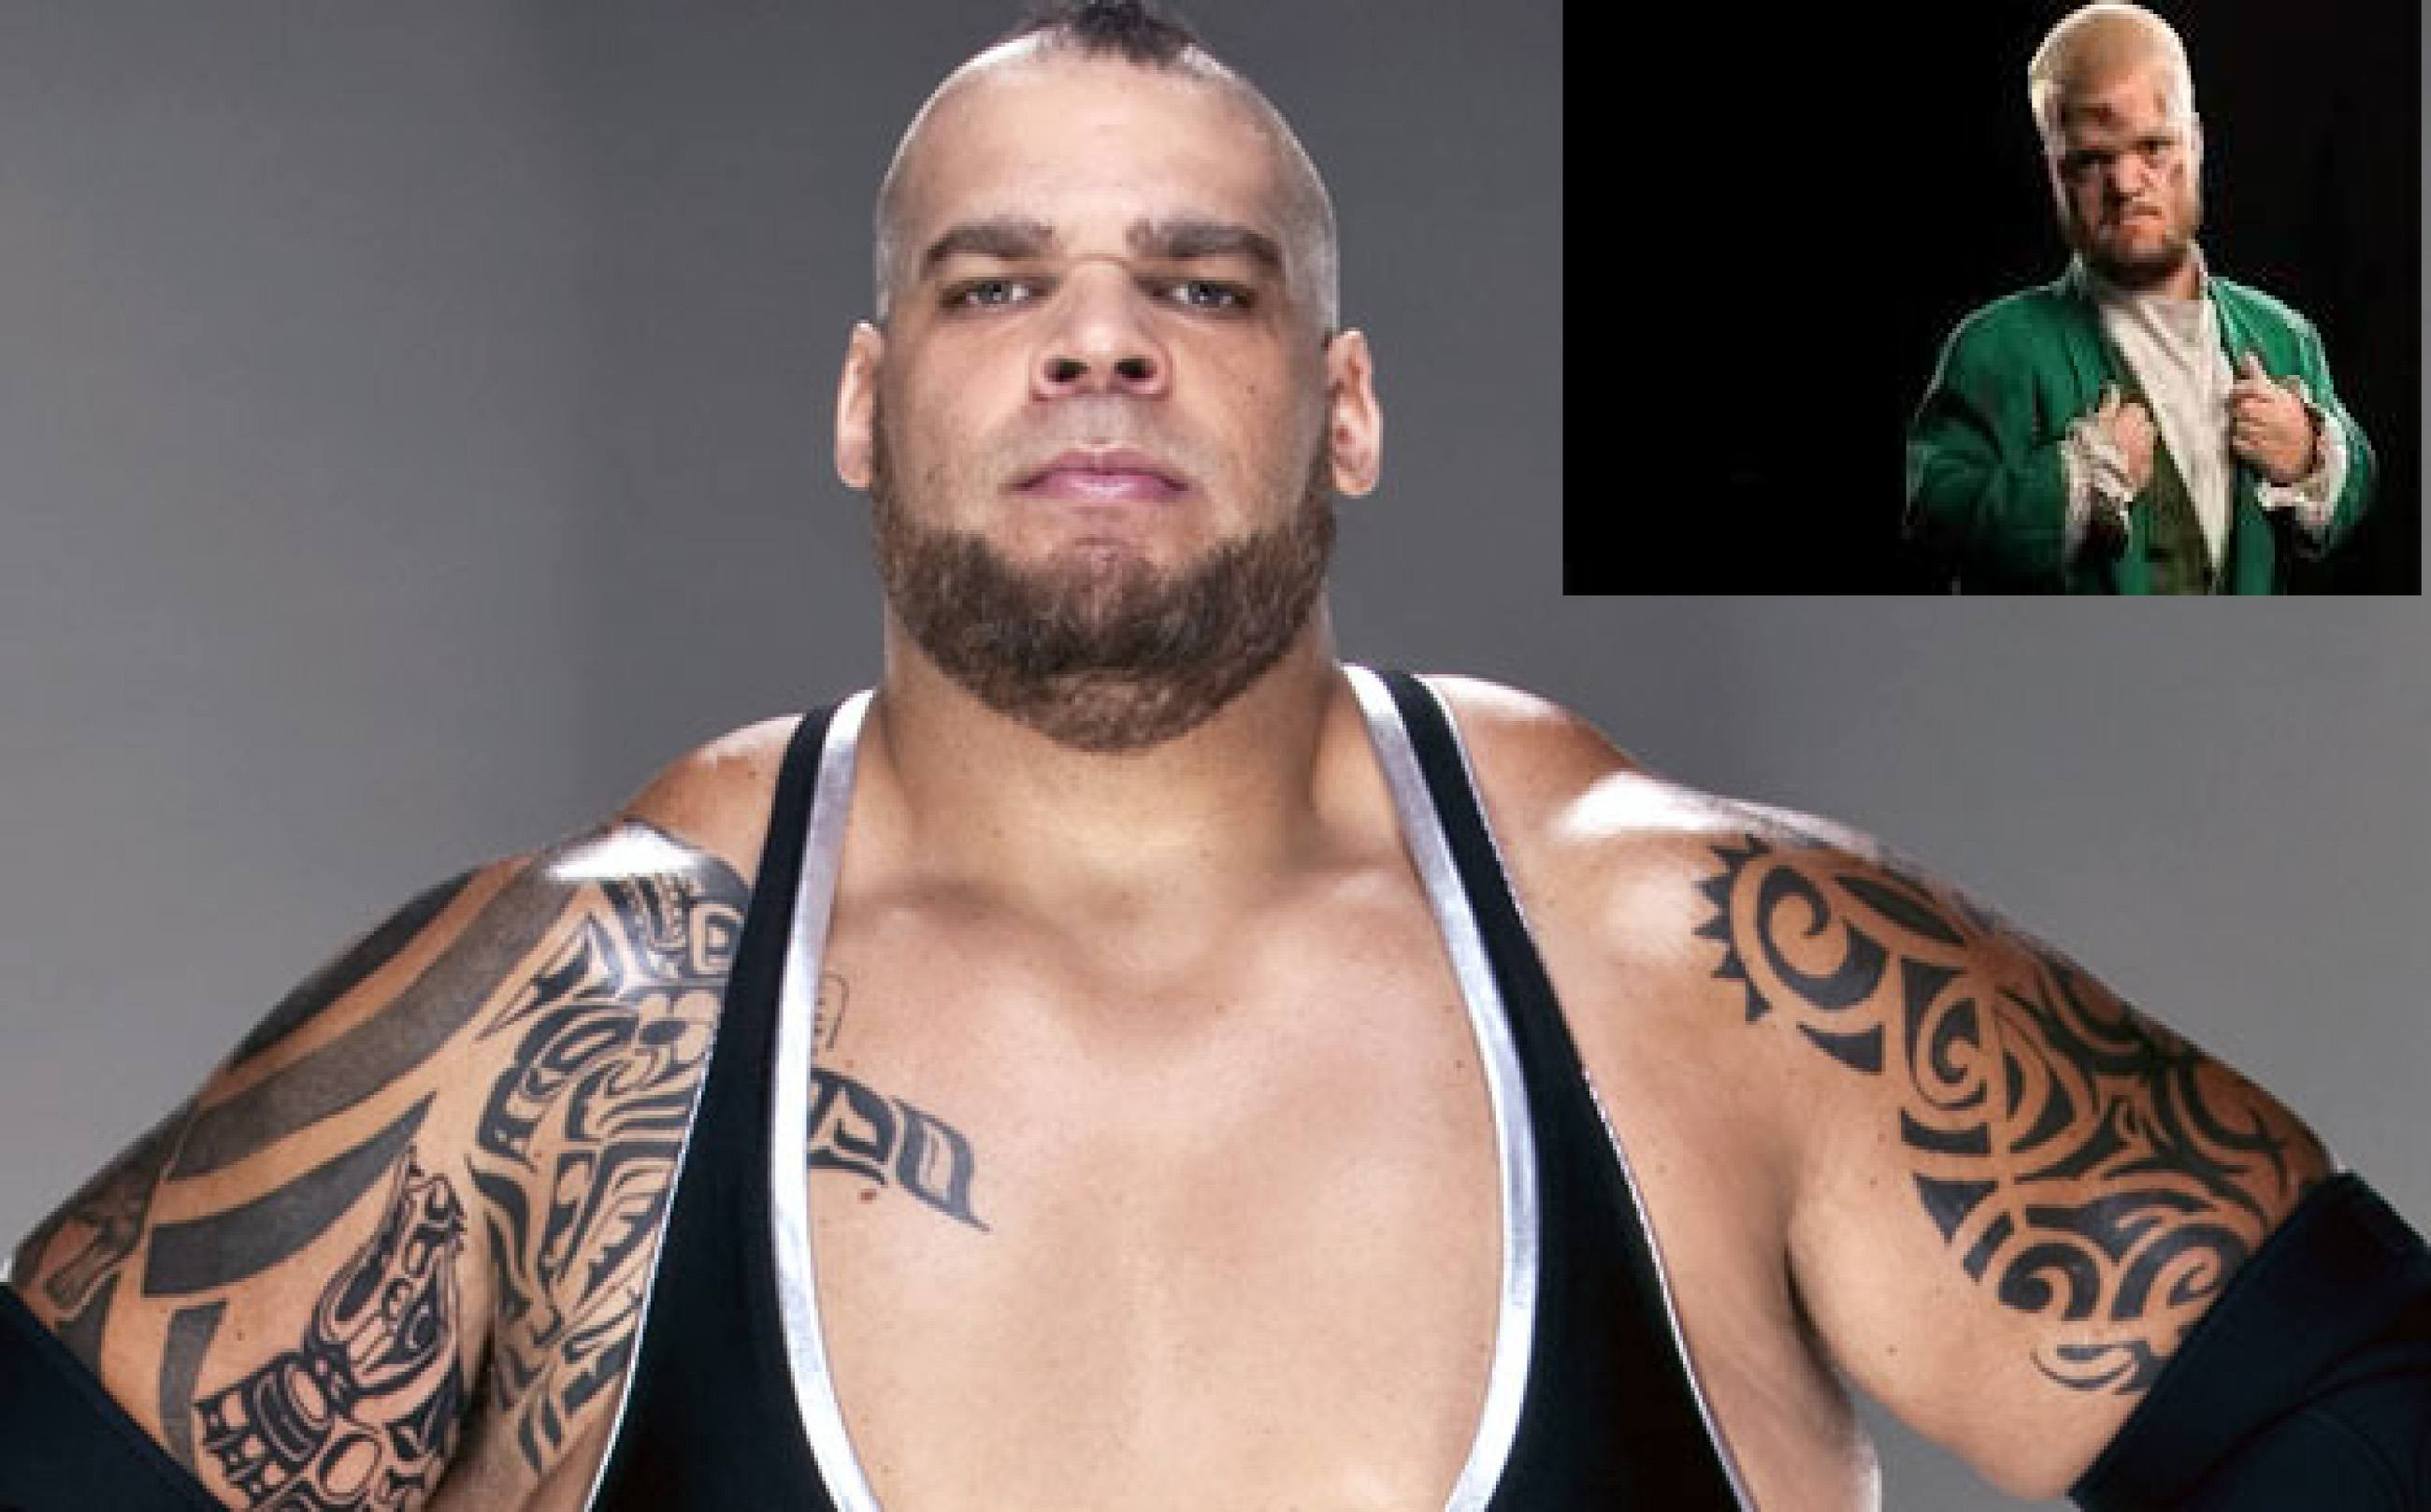 stranded in blizzard hornswoggle survives in brodus clay s hollowed